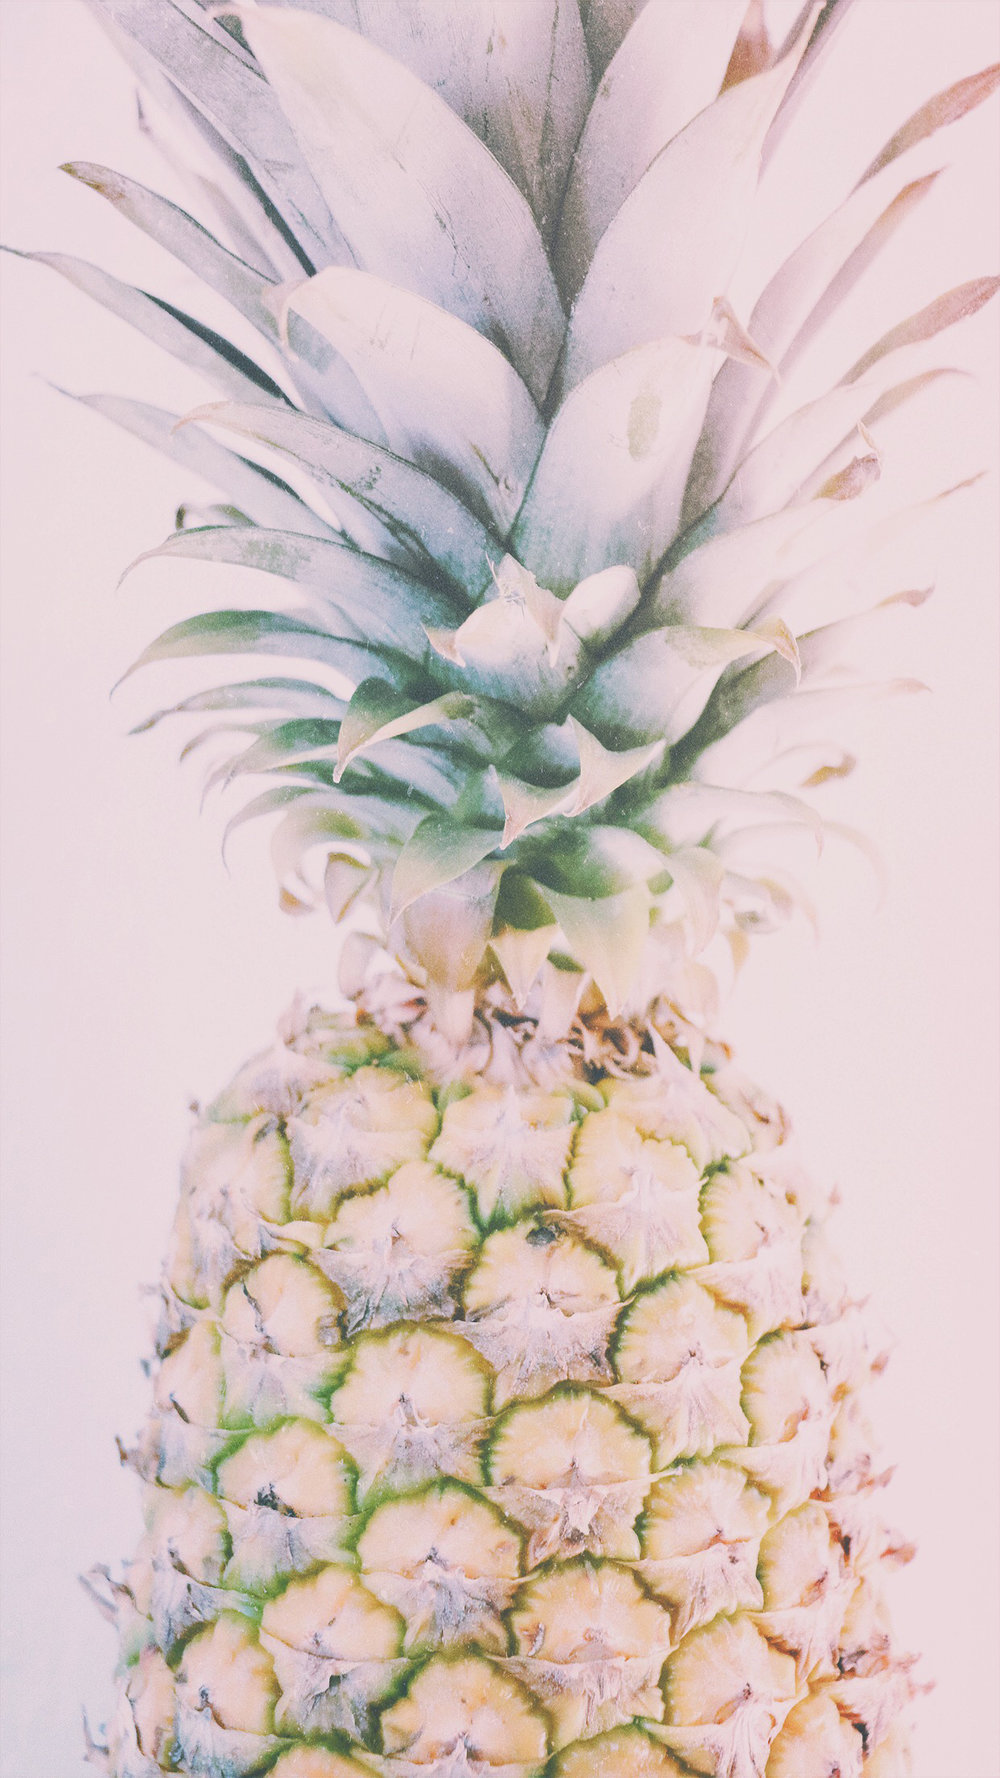 Wallpaper iphone pineapple - Iphone 6 Plus Iphone 6s Plus Iphone 7 Plus